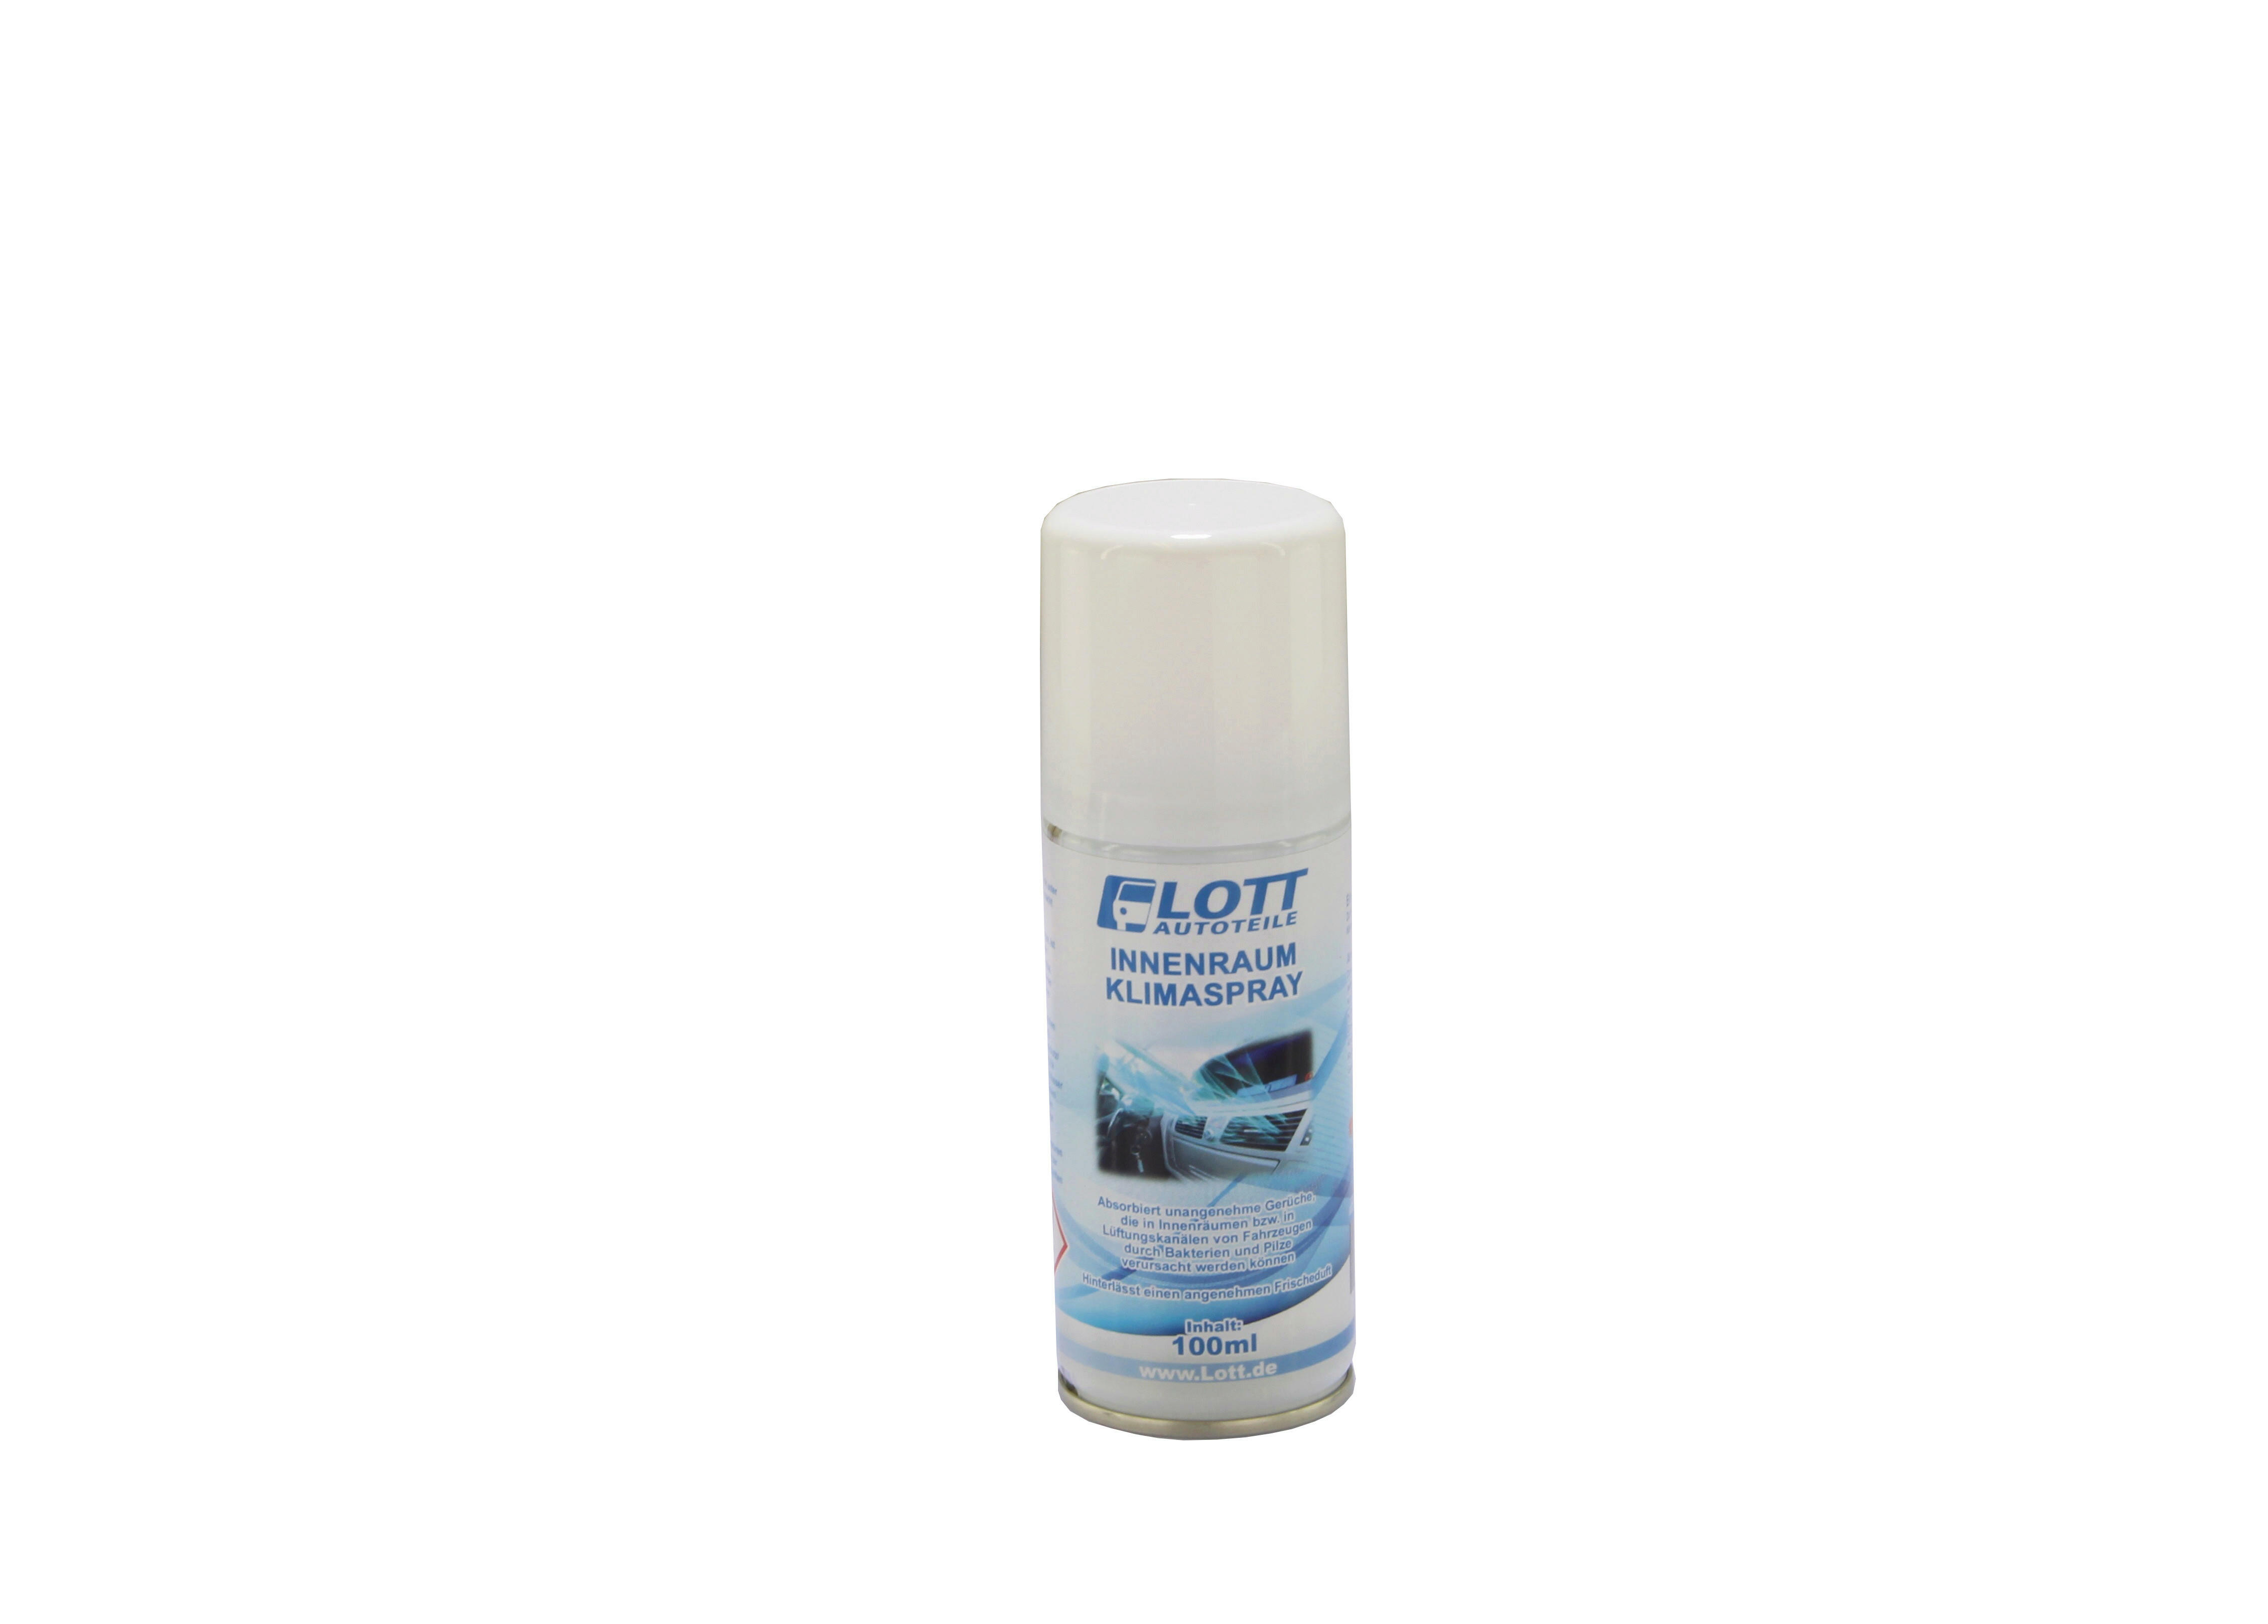 Lott Klimaspray 100ml